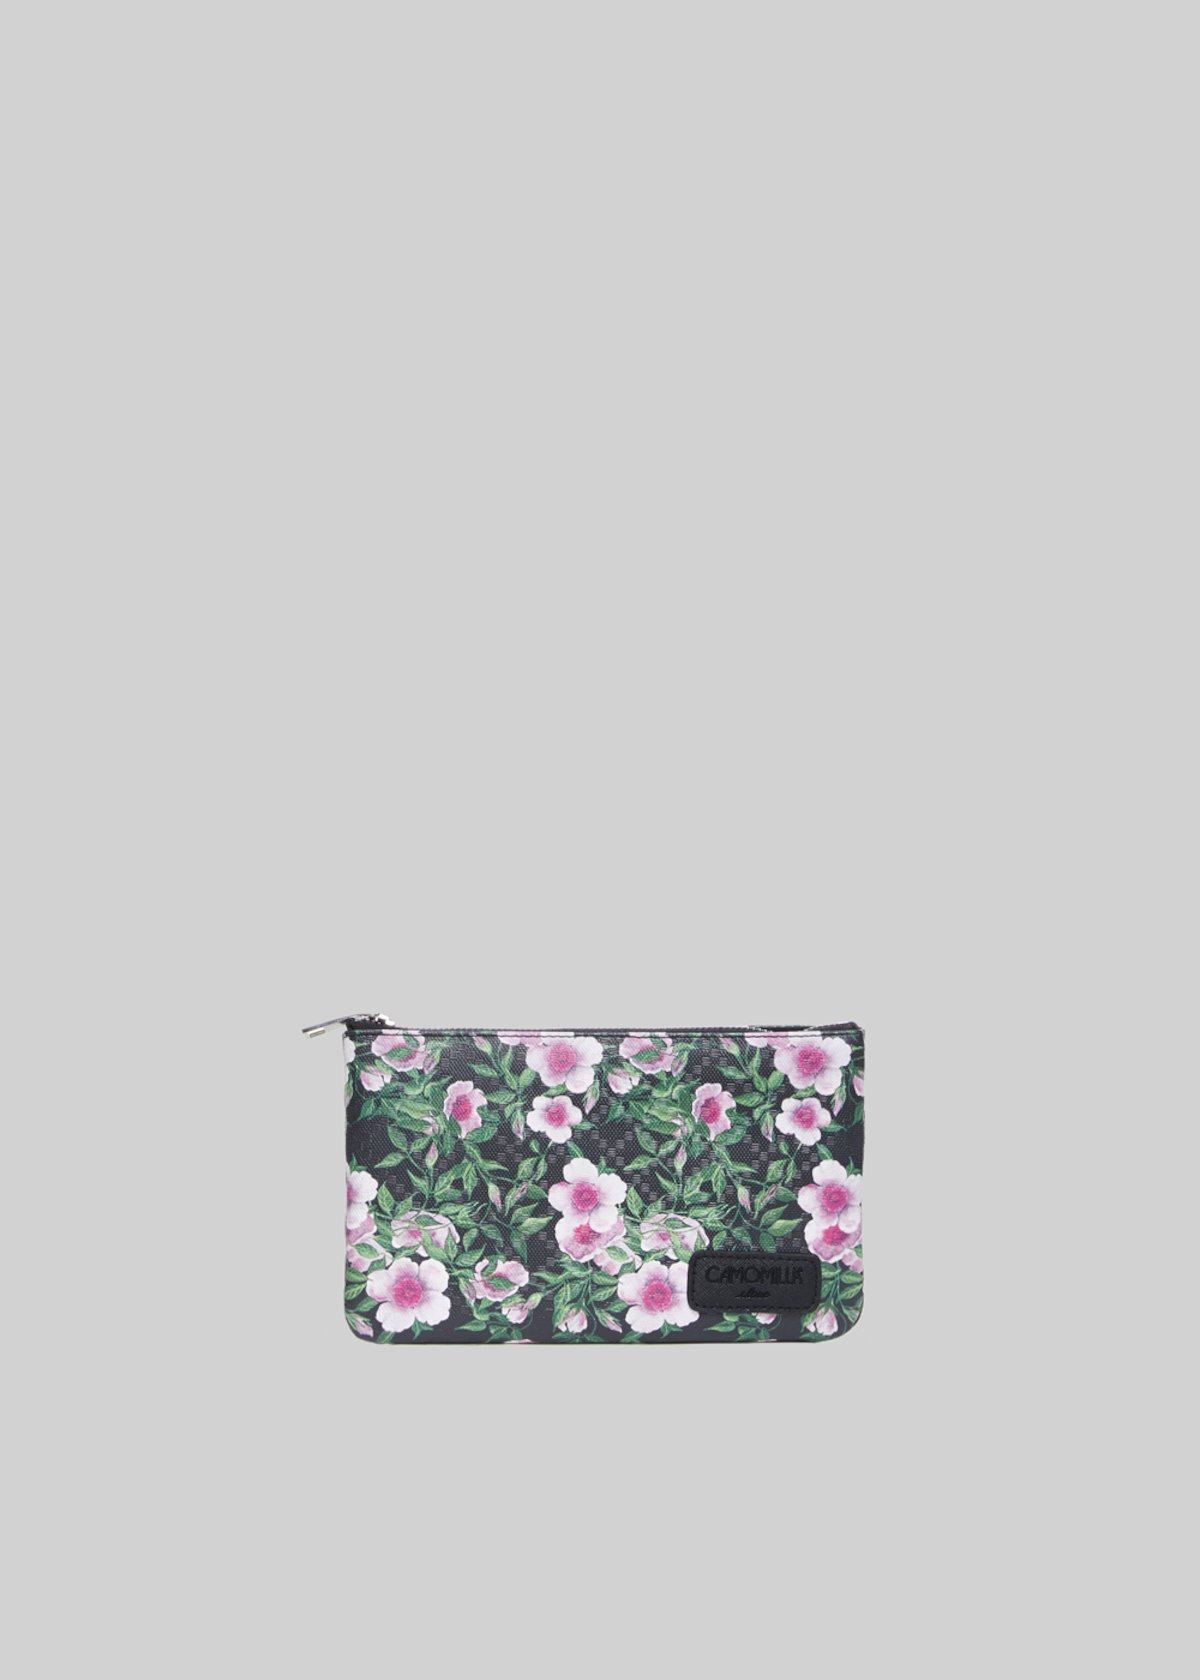 Pochette Tongaflo4 in ecopelle pink flowers print - Black Fantasia